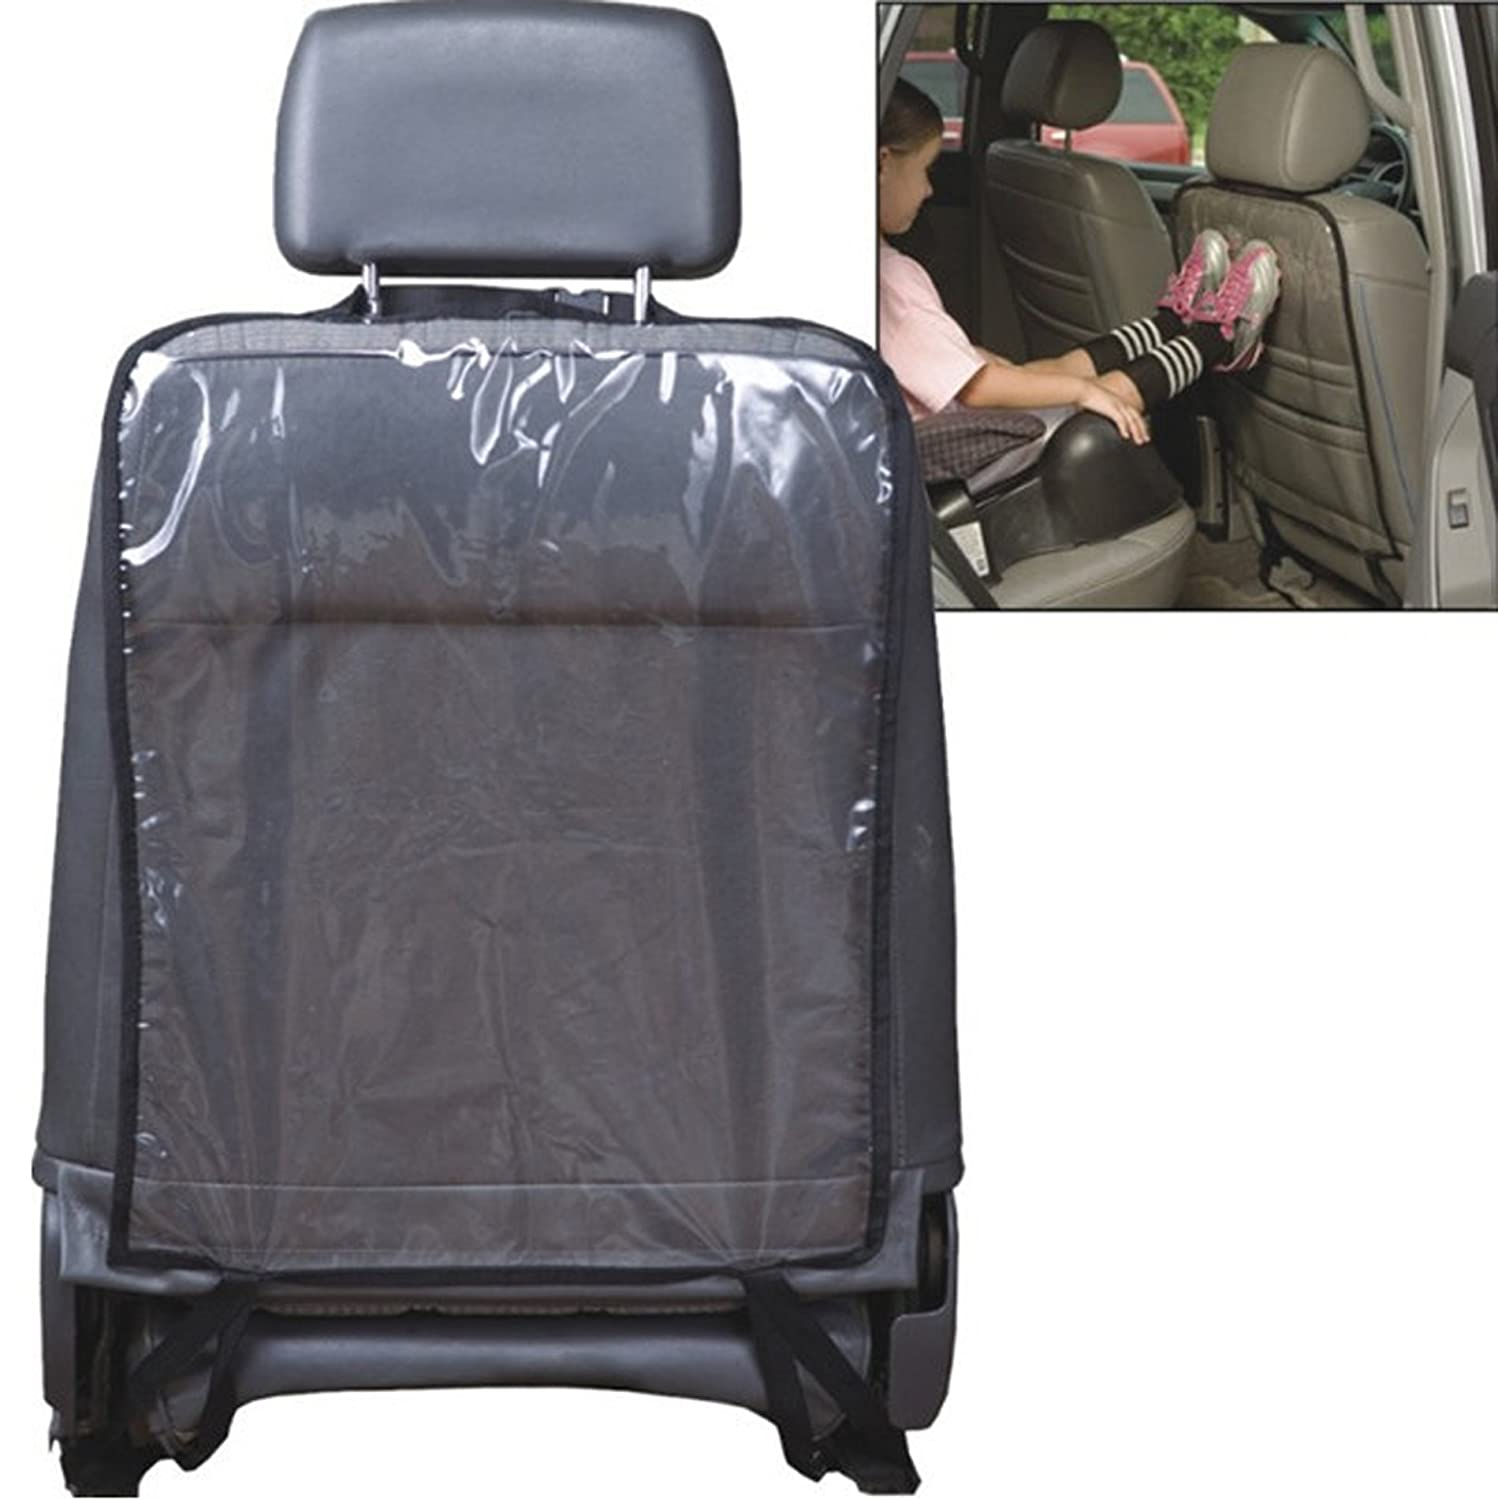 Car Seat Back Kick Protector Waterproof Backseat Auto Cover Mats for Children Kids Scratches Clean Black